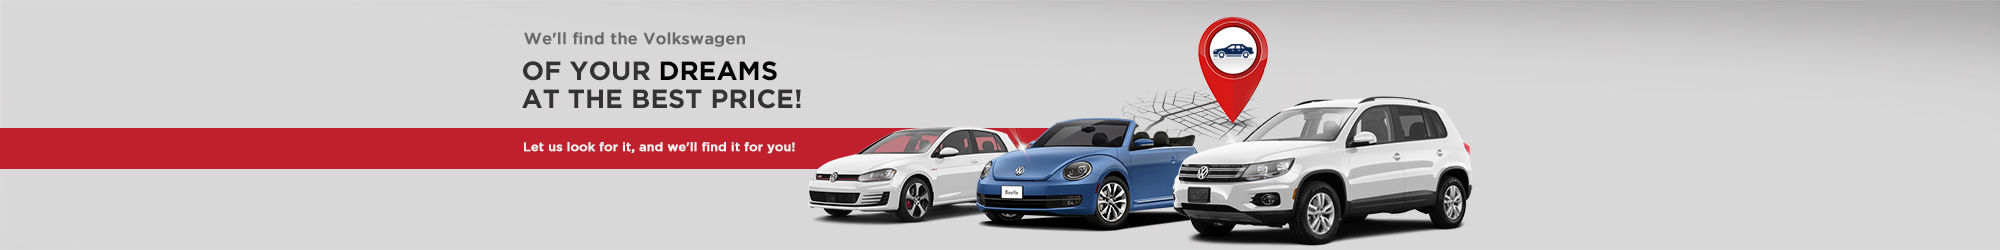 We'll find the Volkswagen of your dreams!